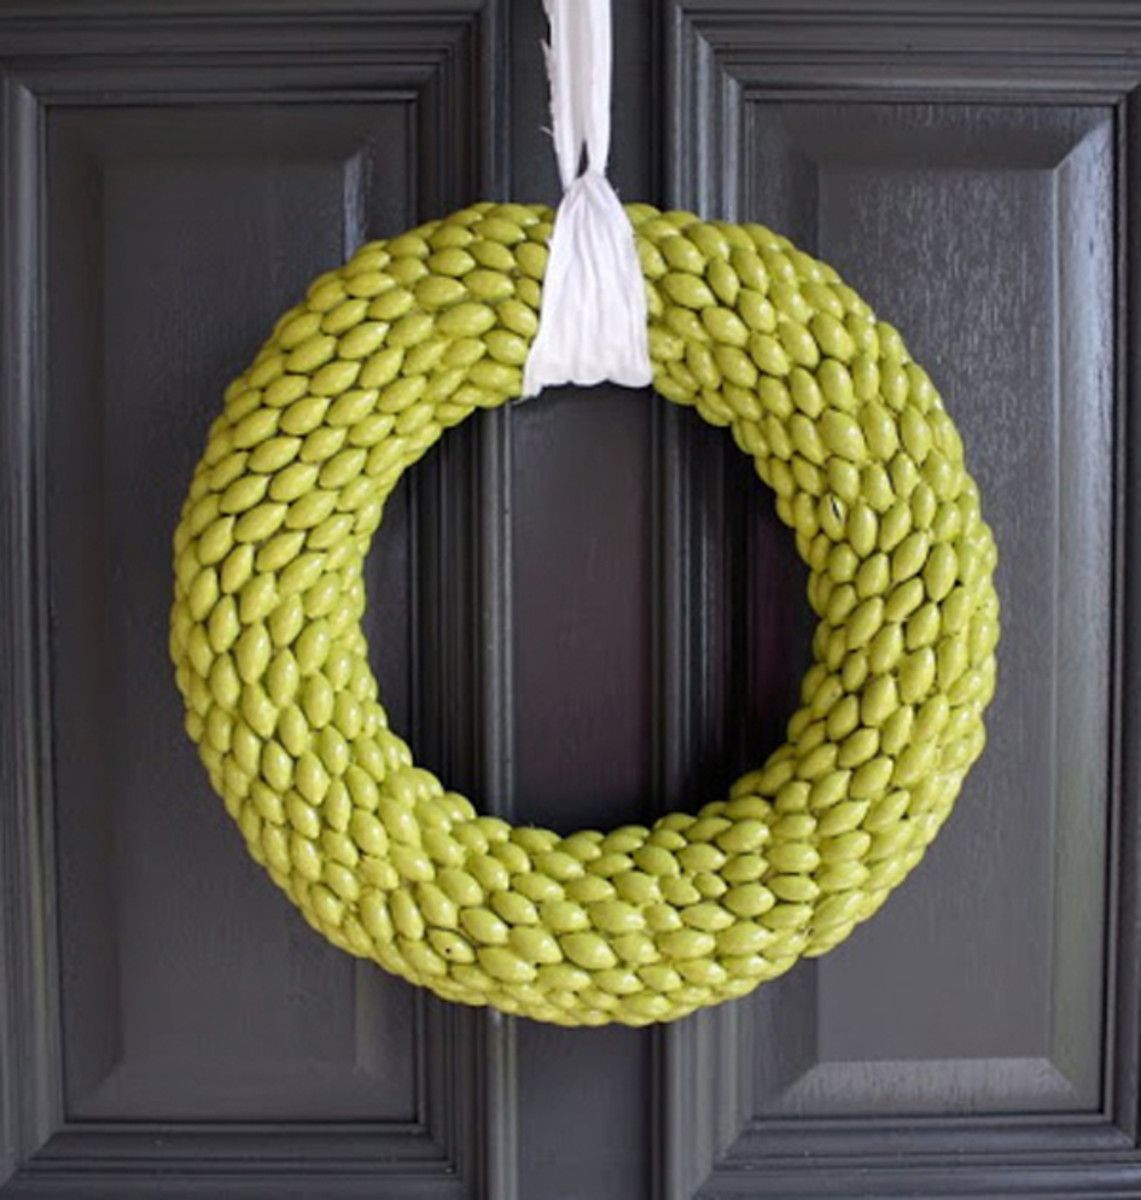 The chartreuse wreath is painted. These caps were taken off the acorns.  It is made the winter wreath with a ribbon on the front door.